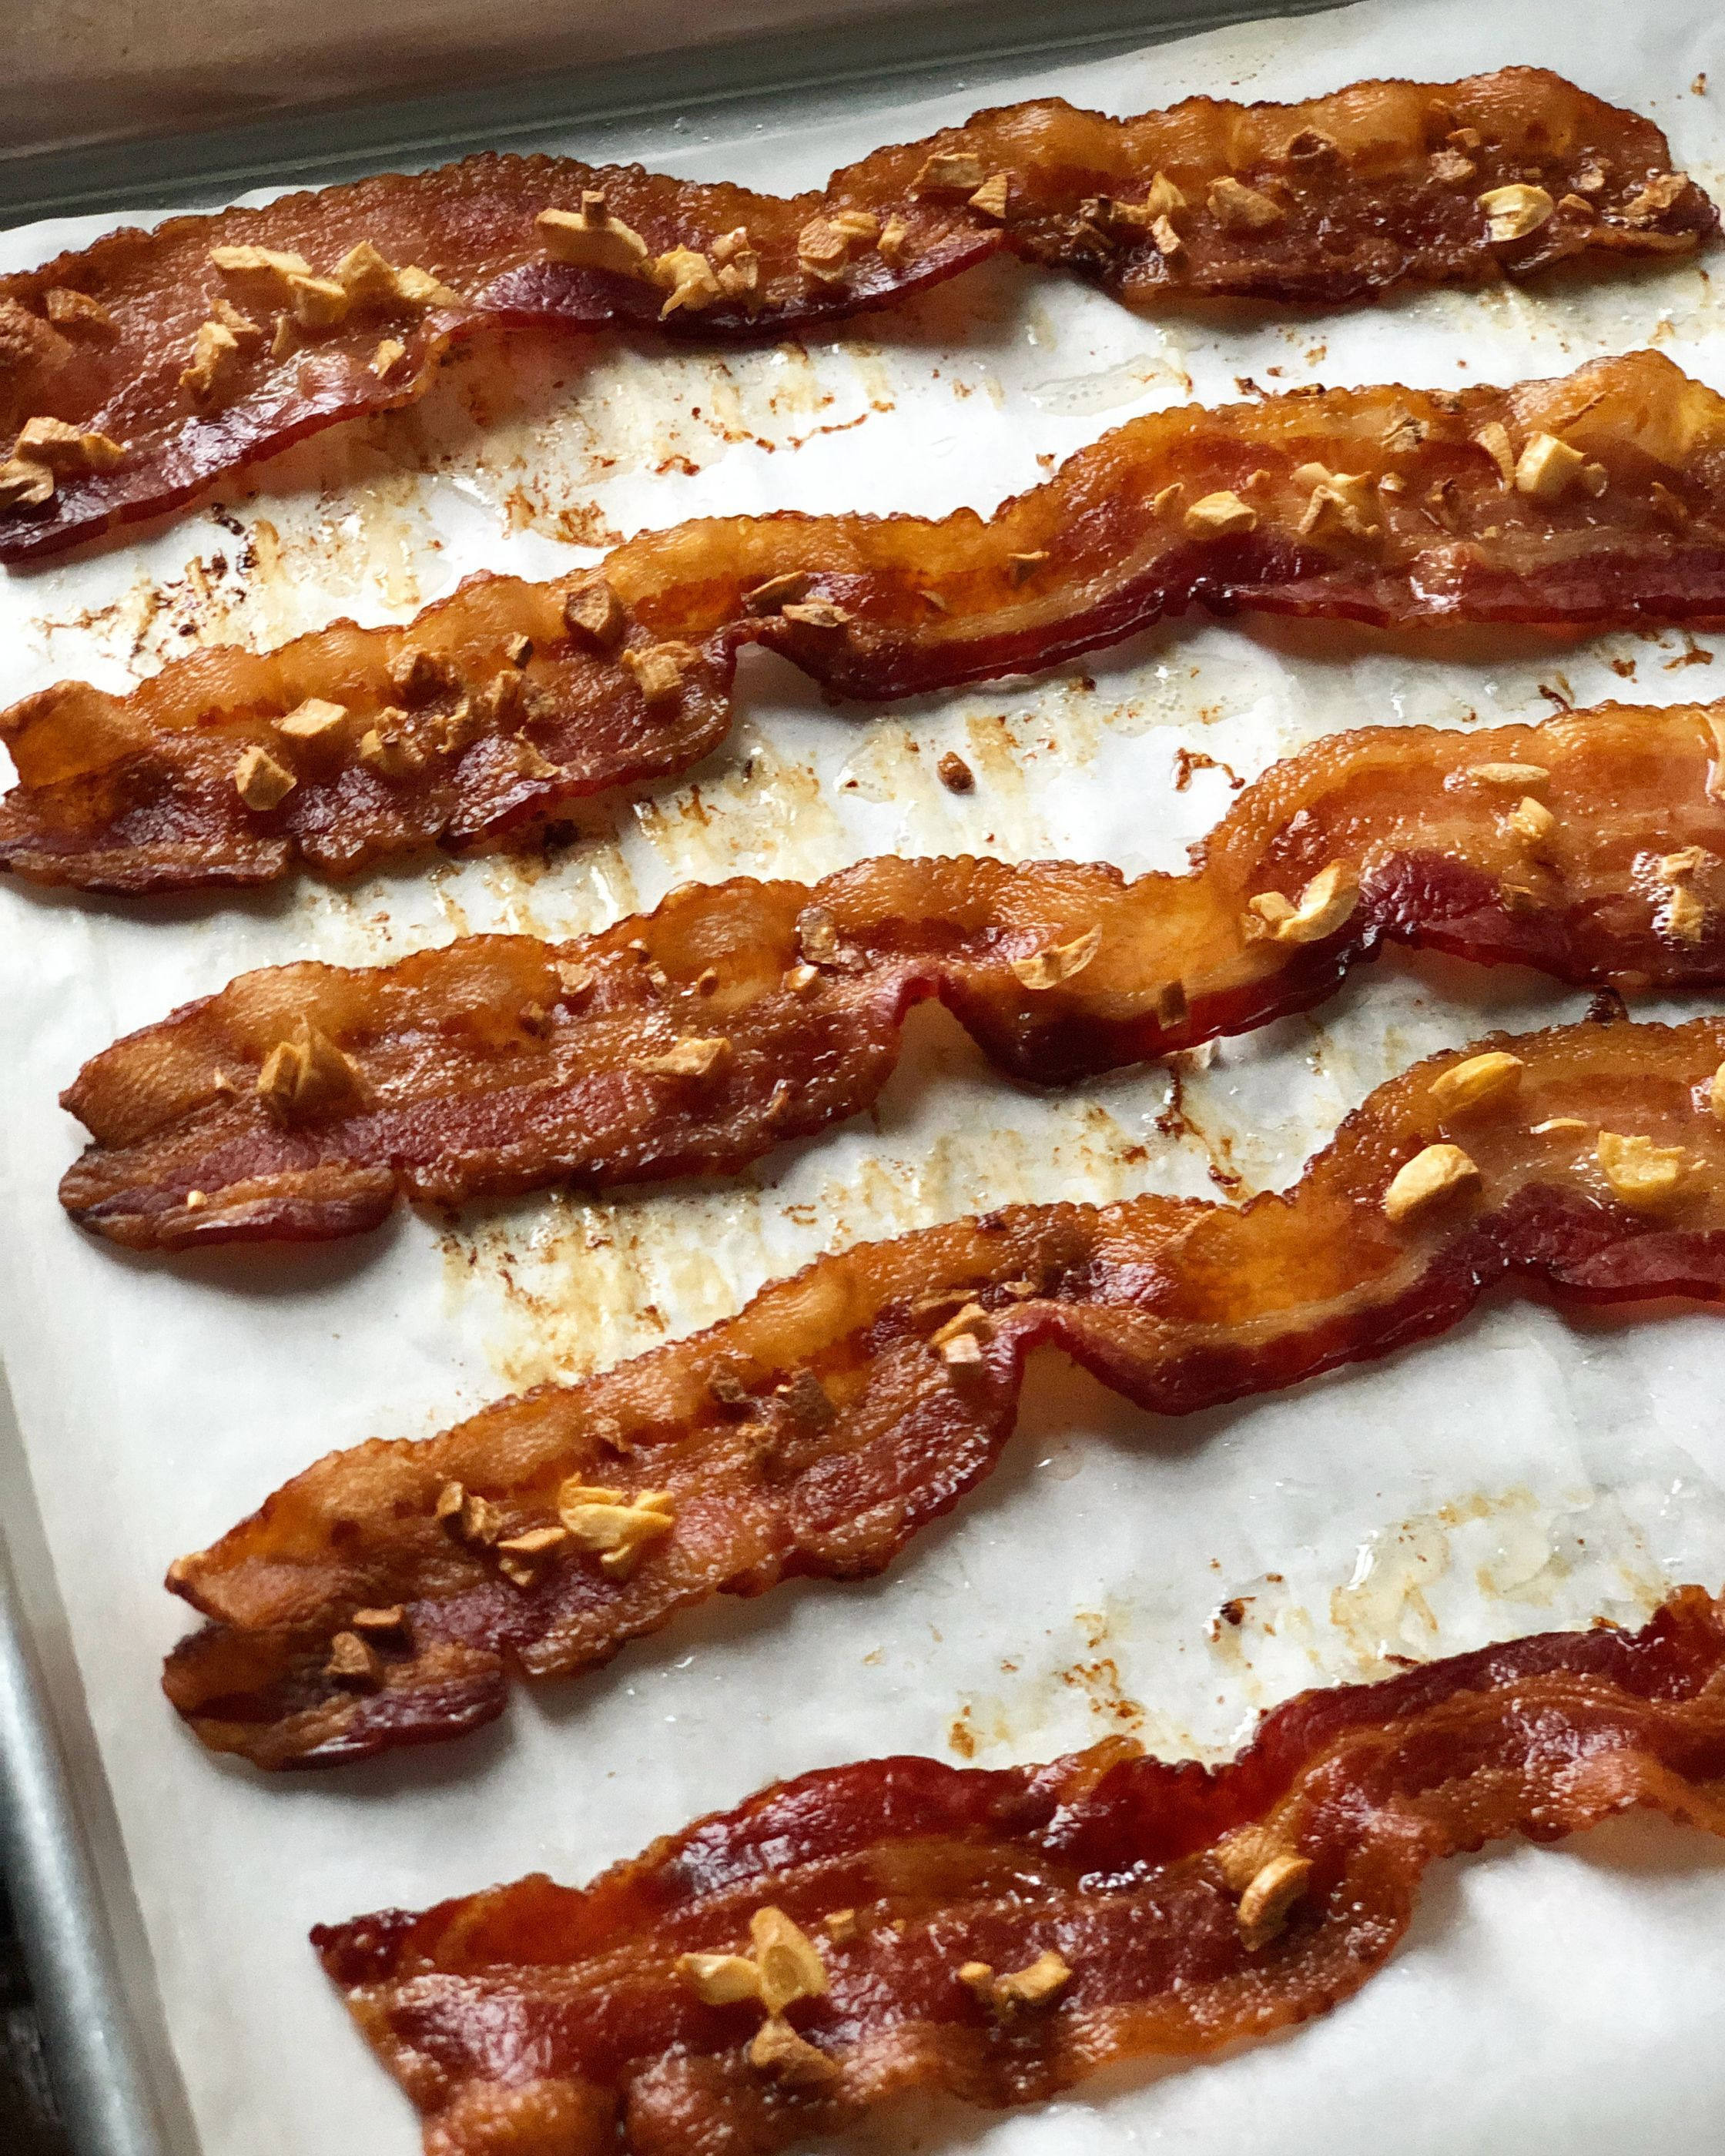 For Even Better Bacon, Chrissy Teigen Does This